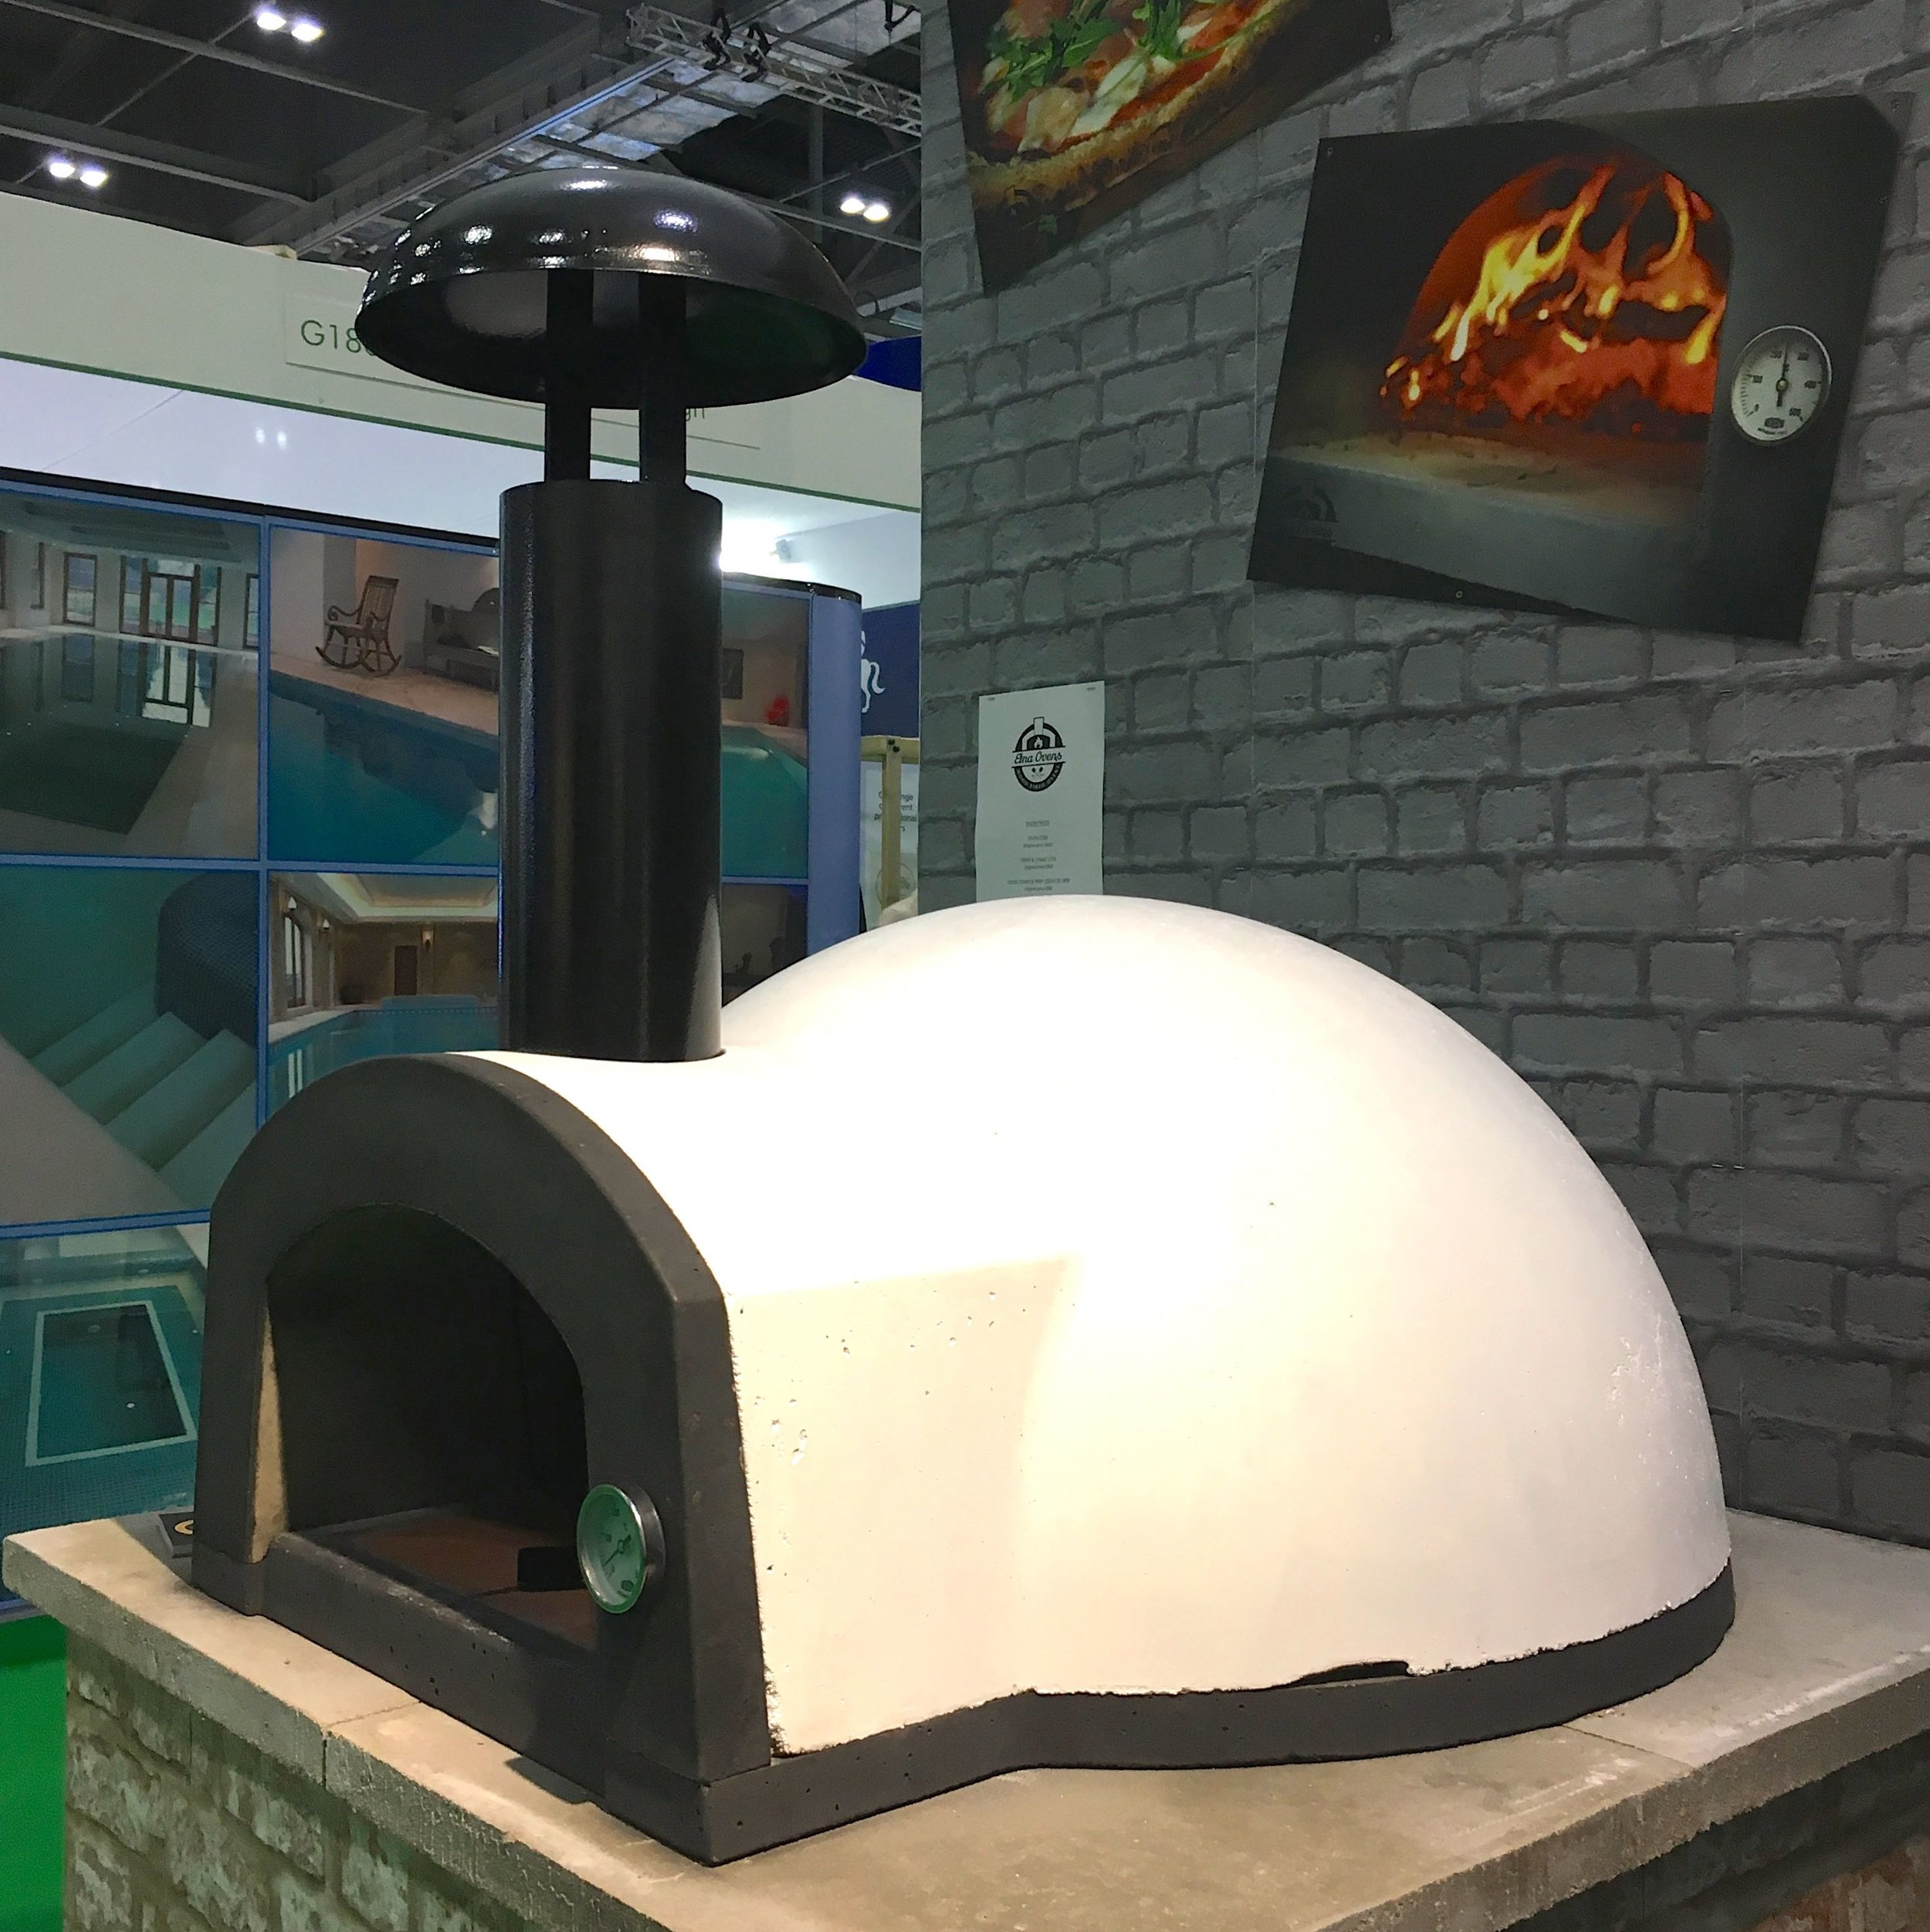 An Etna Ovens traditional pizza oven